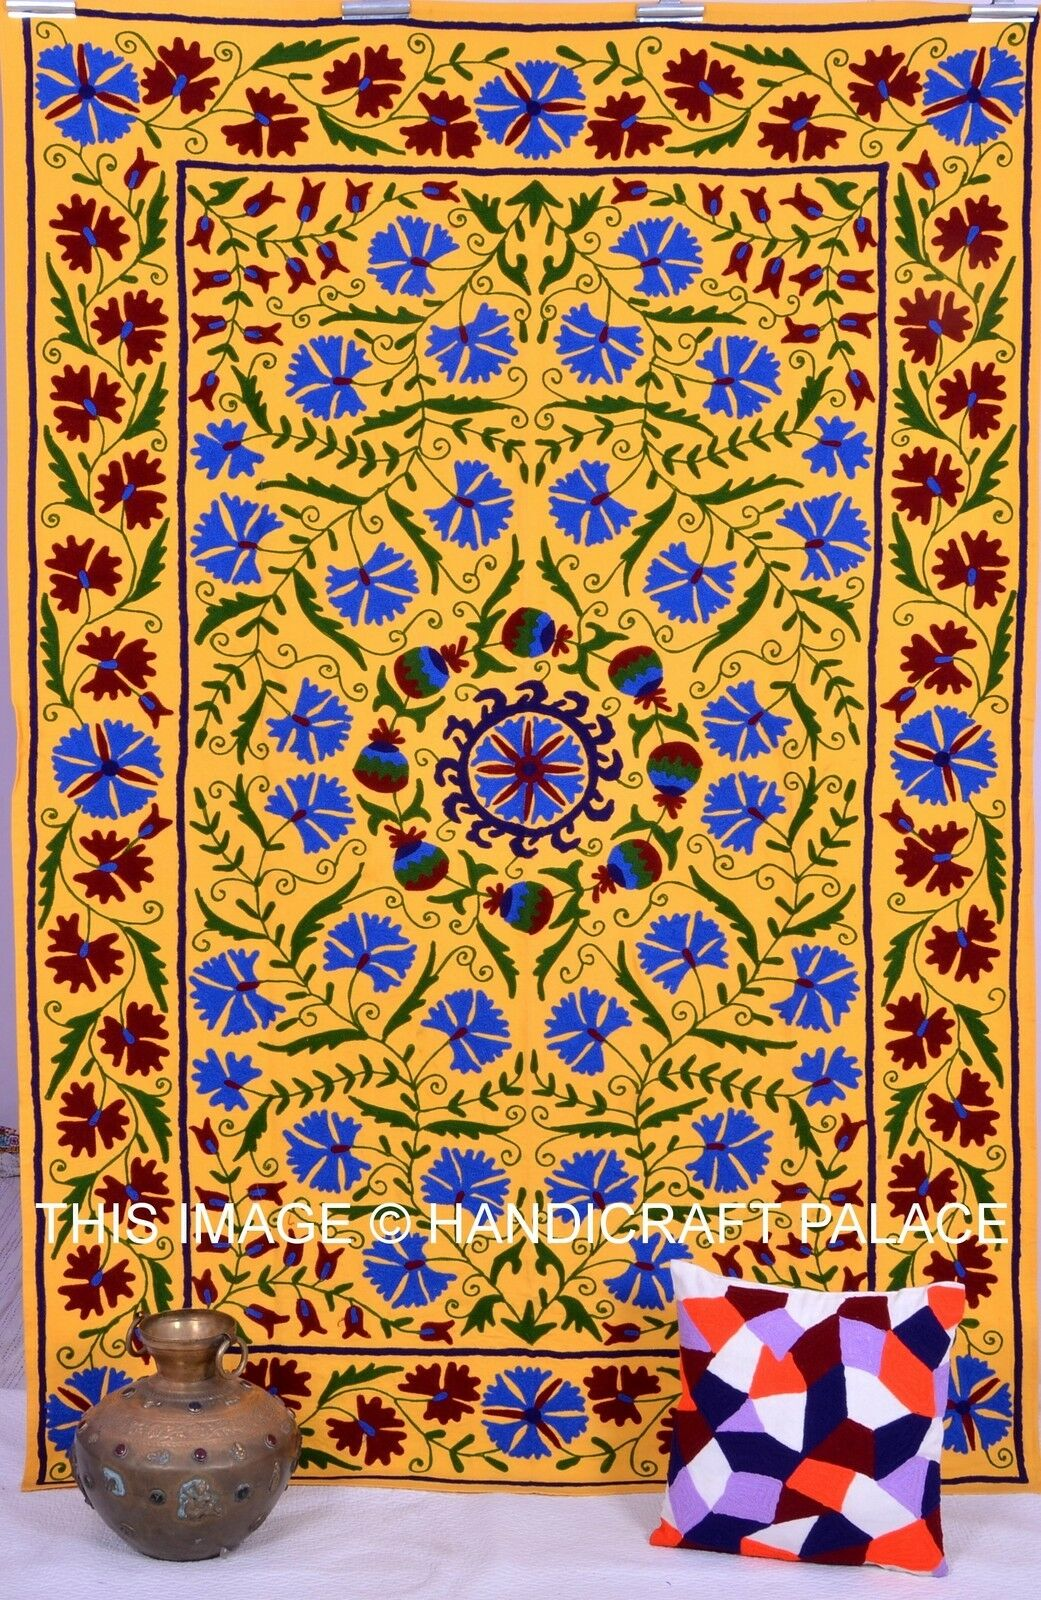 Uzbek Embroiderot suzani Bett StKunstseite Bettspread Cotton Bett Sheet Single Table Startseite